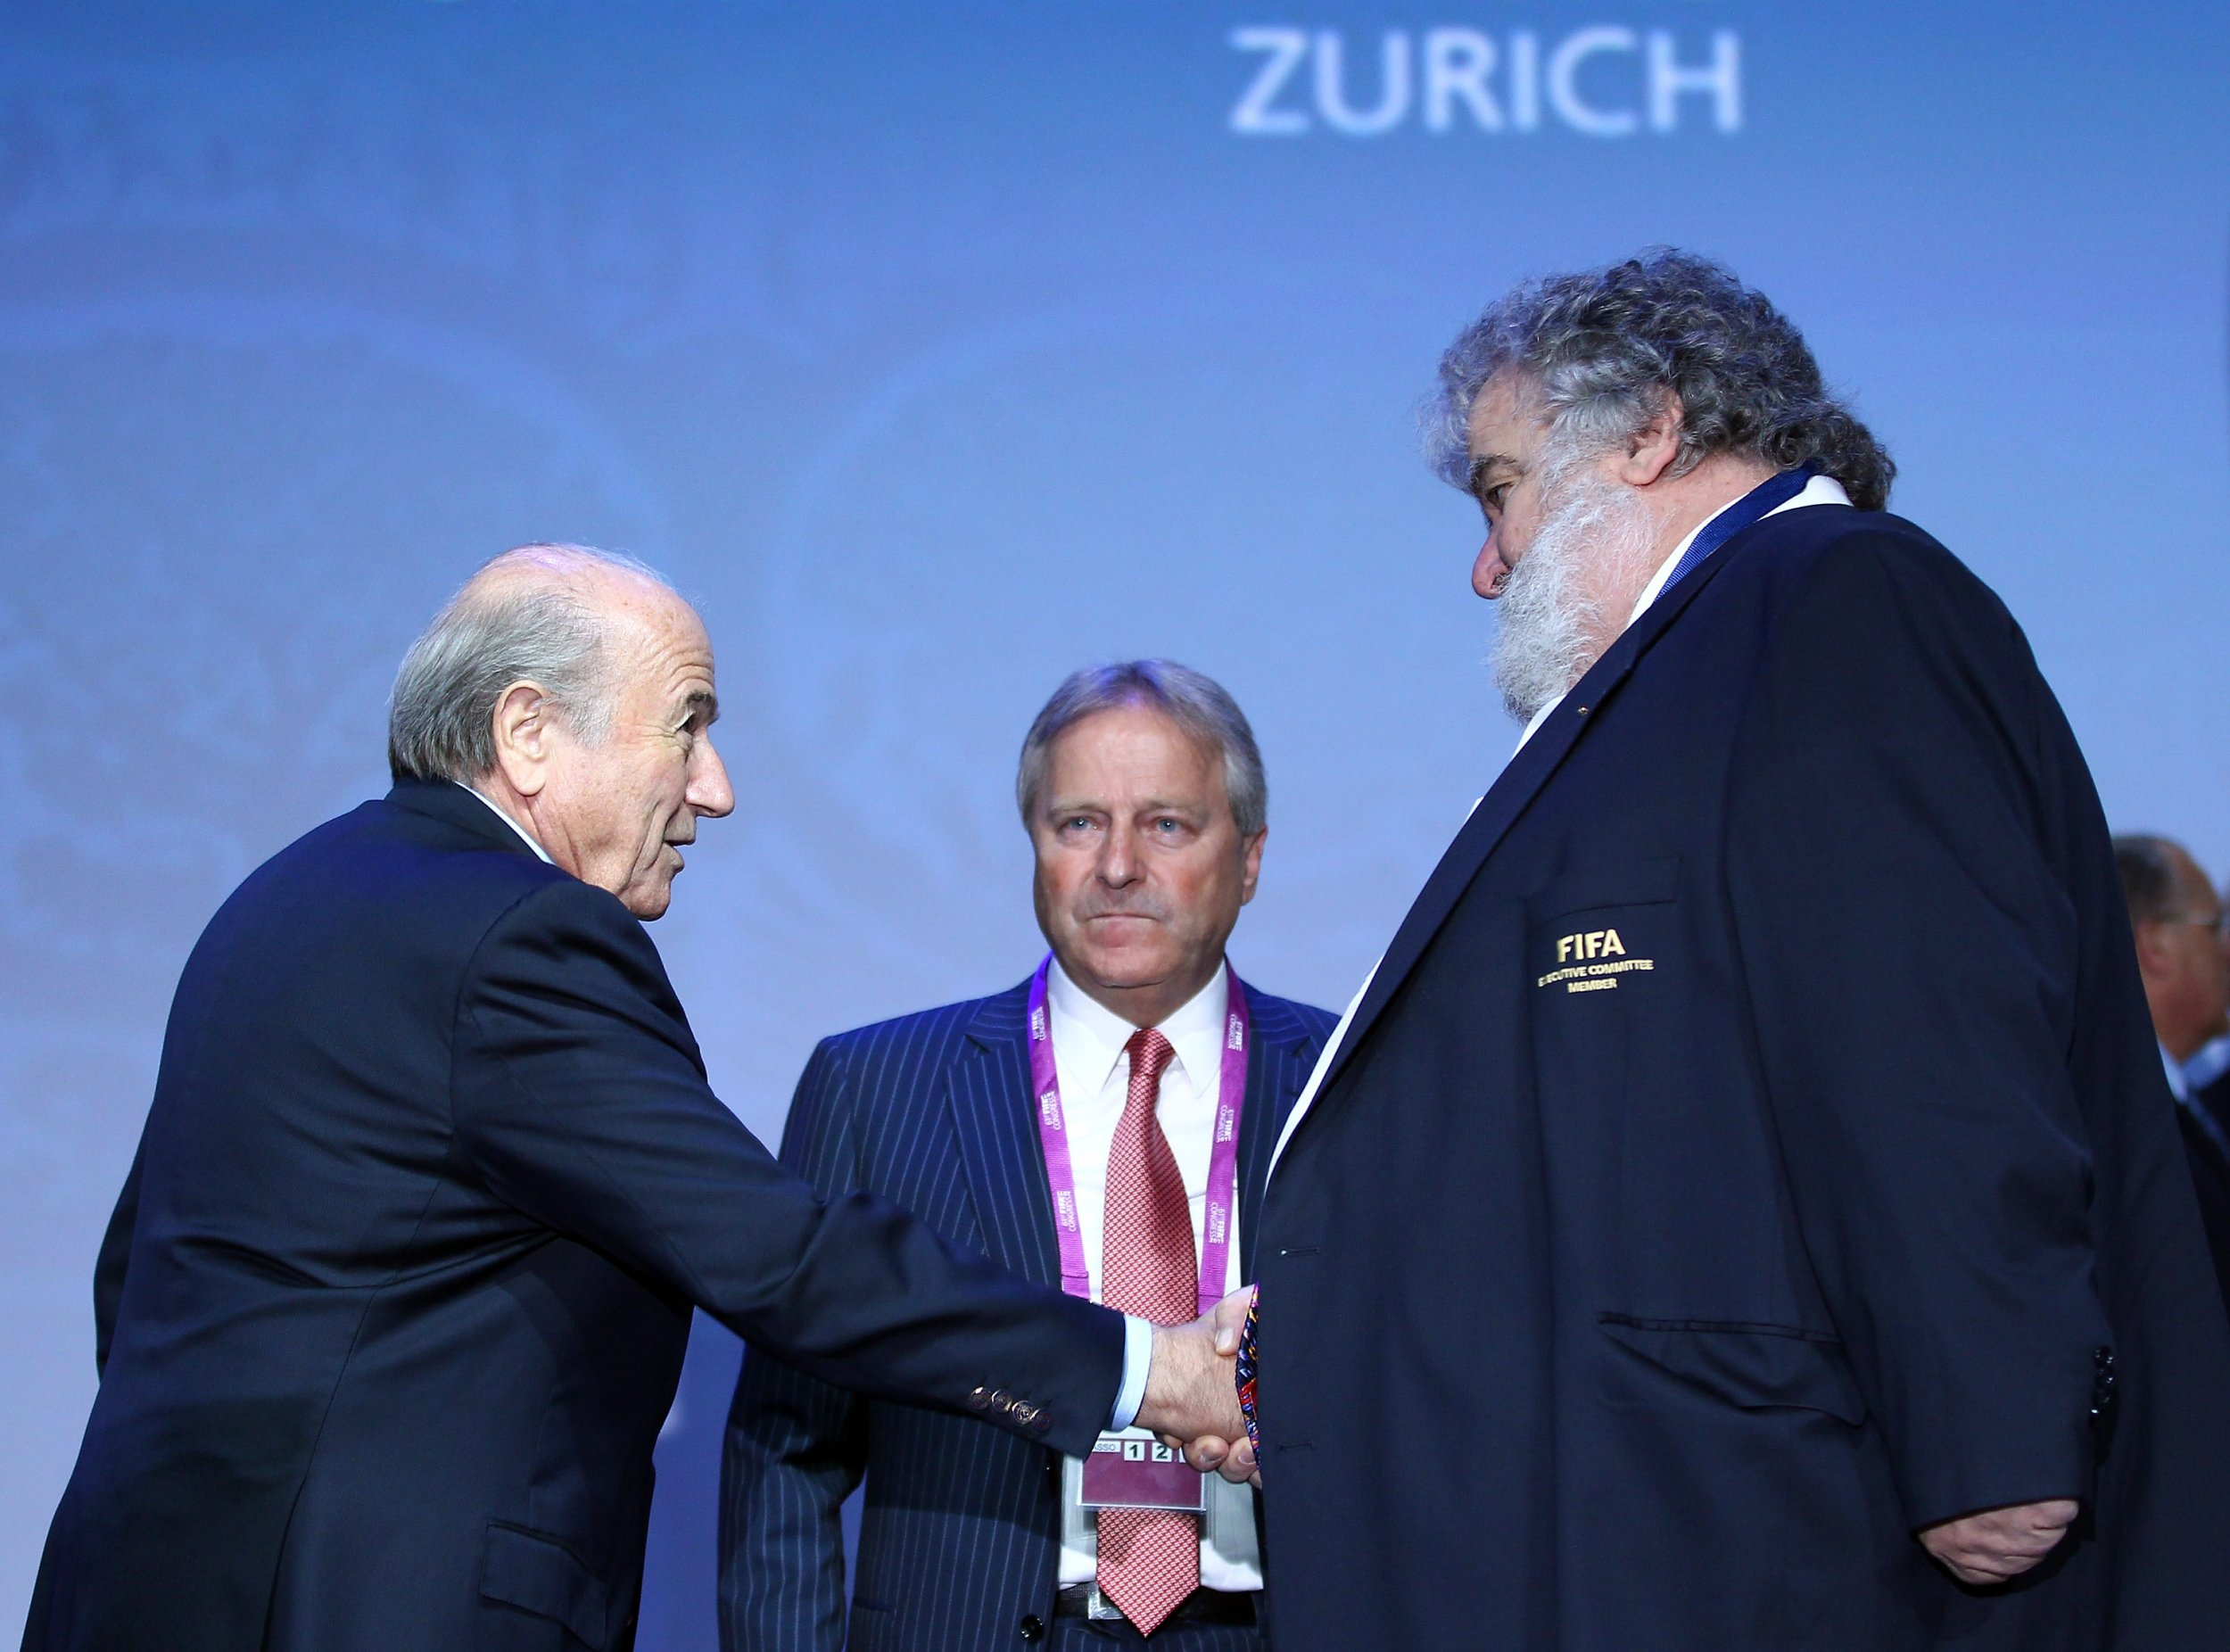 Chuck Blazer, right, with former FIFA president Sepp Blatter.